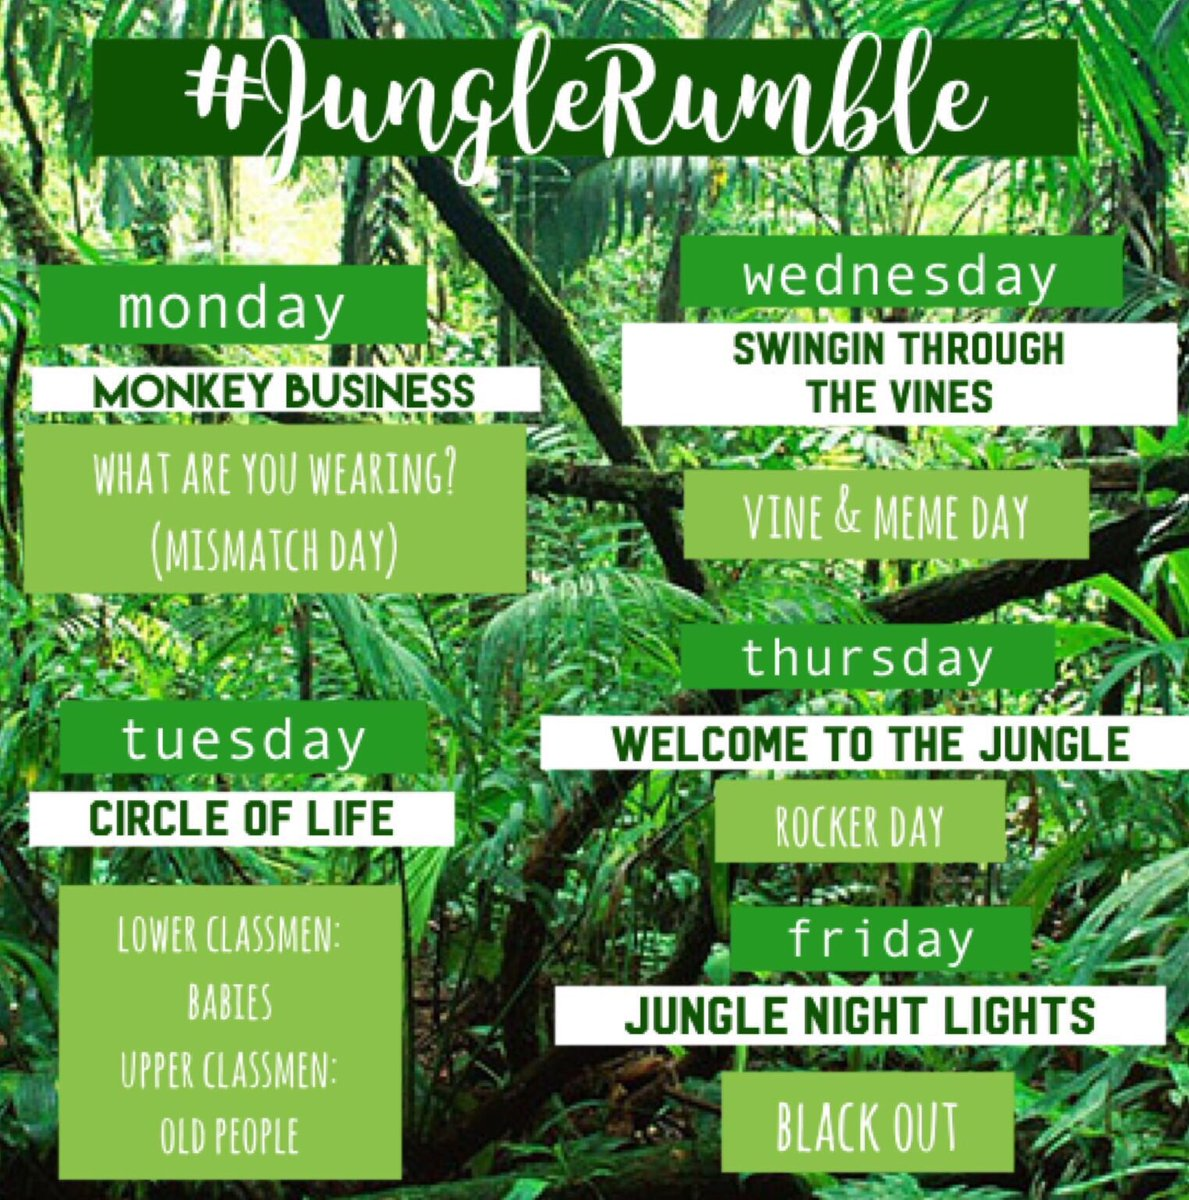 you don&#39;t want to miss out on our upcoming spirit week! #junglerumble starts next monday! <br>http://pic.twitter.com/QvCMzJQ0LH